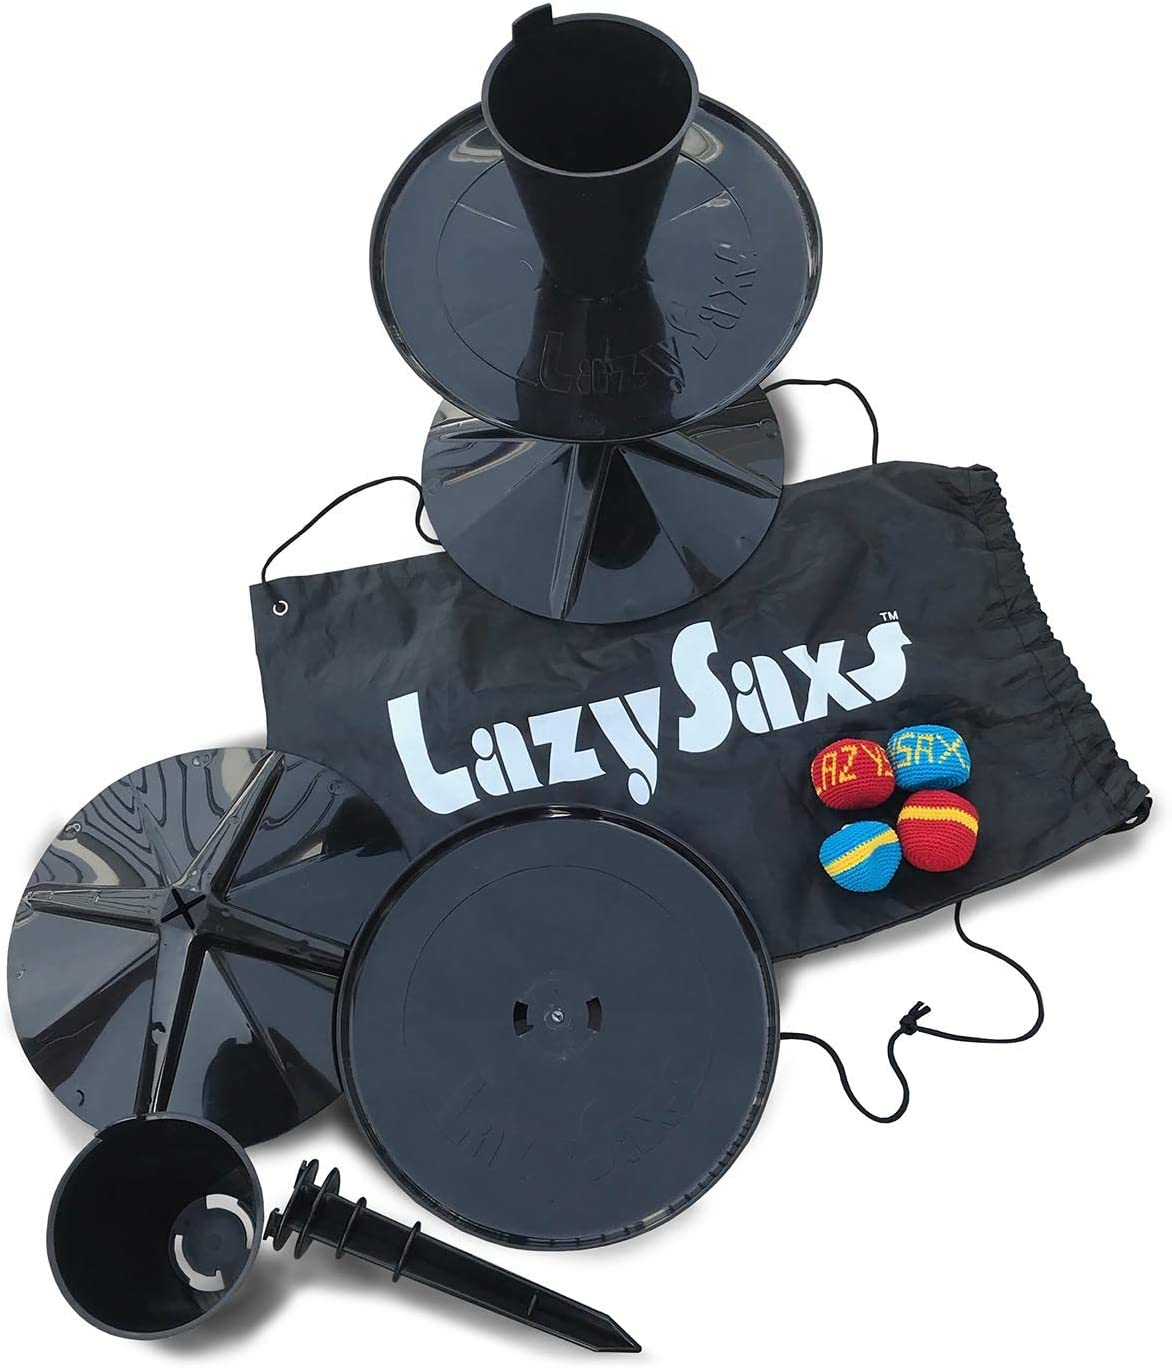 Manufacturer regenerated product LazySaxs Sitting Game for The Park Tailgate free Ba Beach Camping